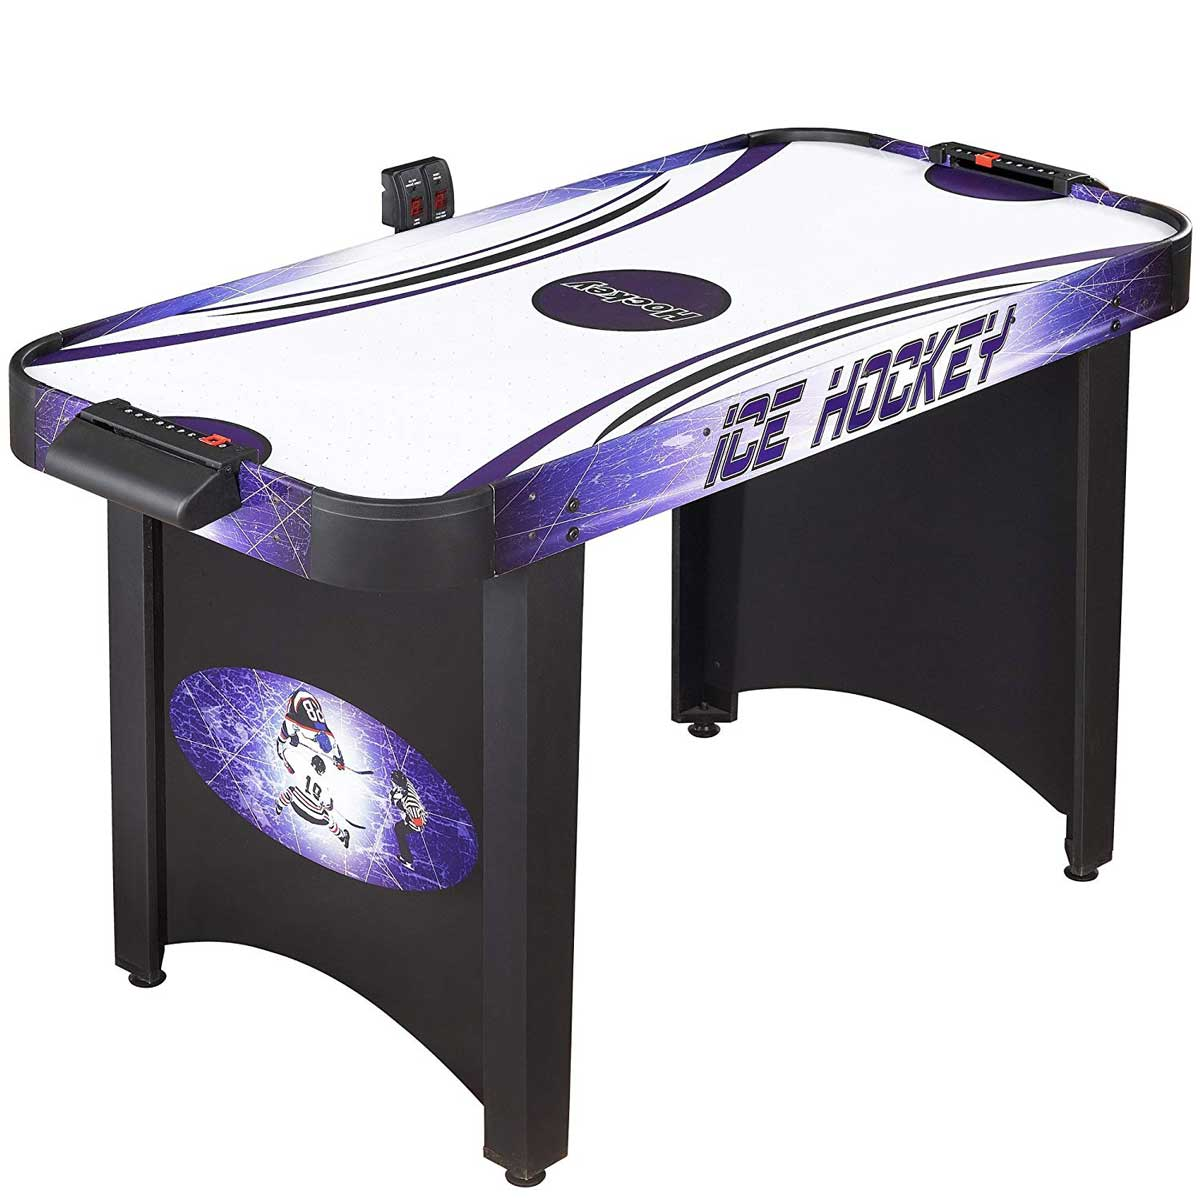 Hathaway Hat Trick 4-Ft Air Hockey Table